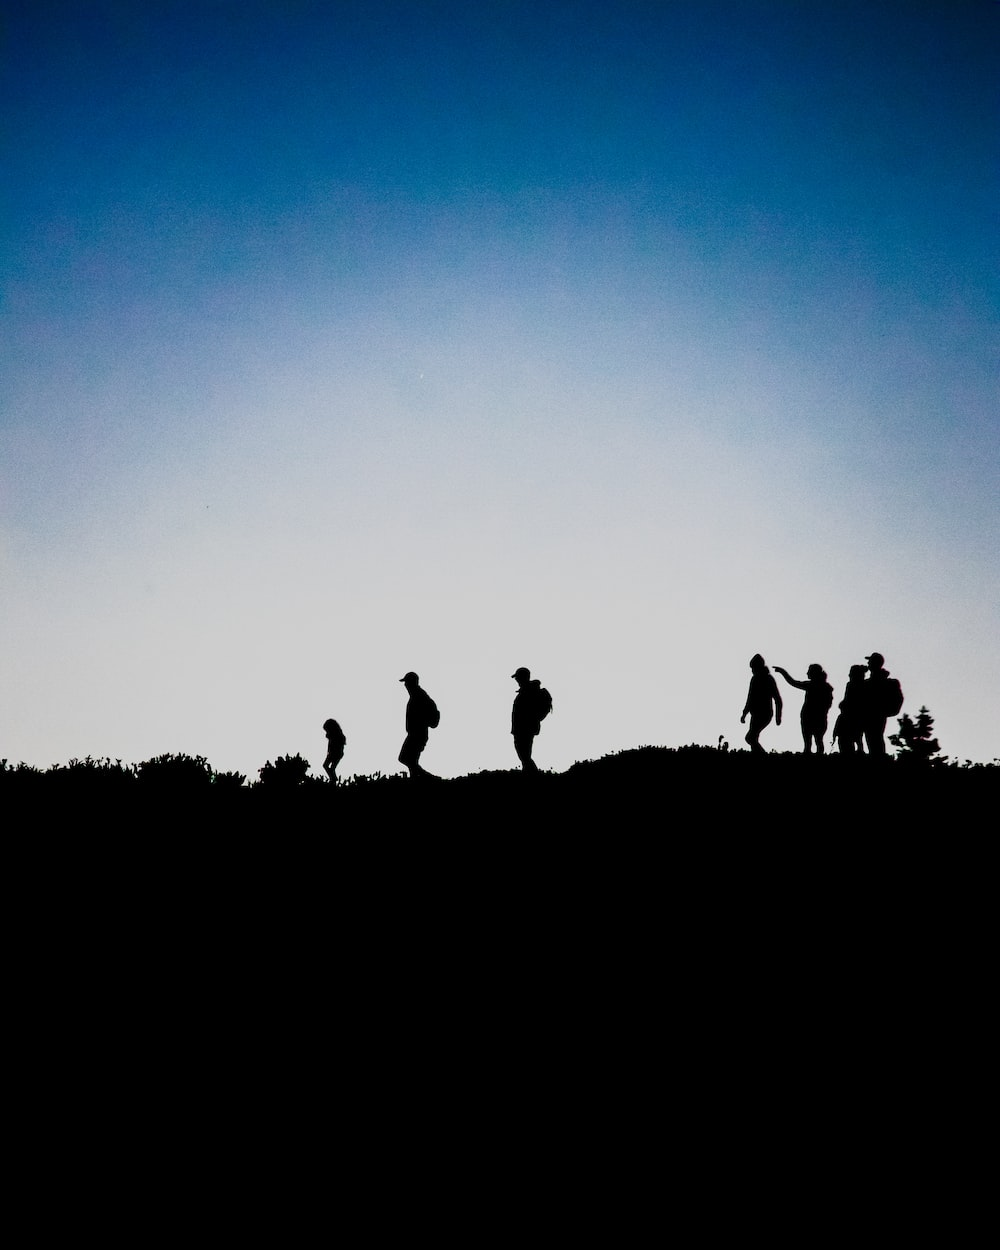 silhouette of people on top of hill during daytime